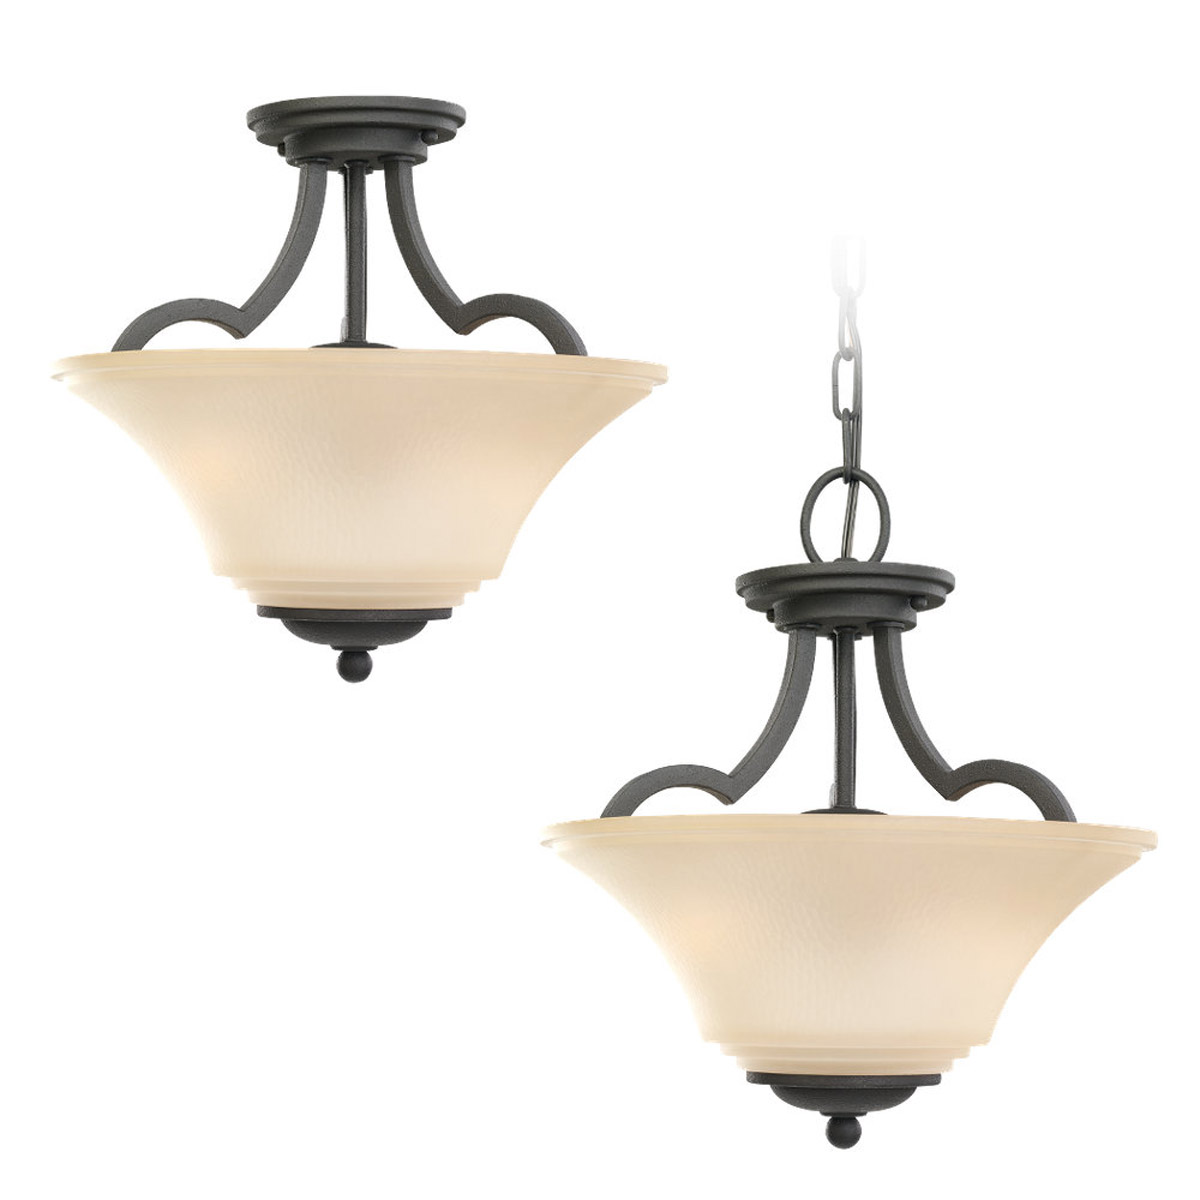 Sea Gull 77375-839 Somerton 2 Light 13 inch Blacksmith Semi-Flush Mount Ceiling Light in Cafe Tint Glass, Standard photo